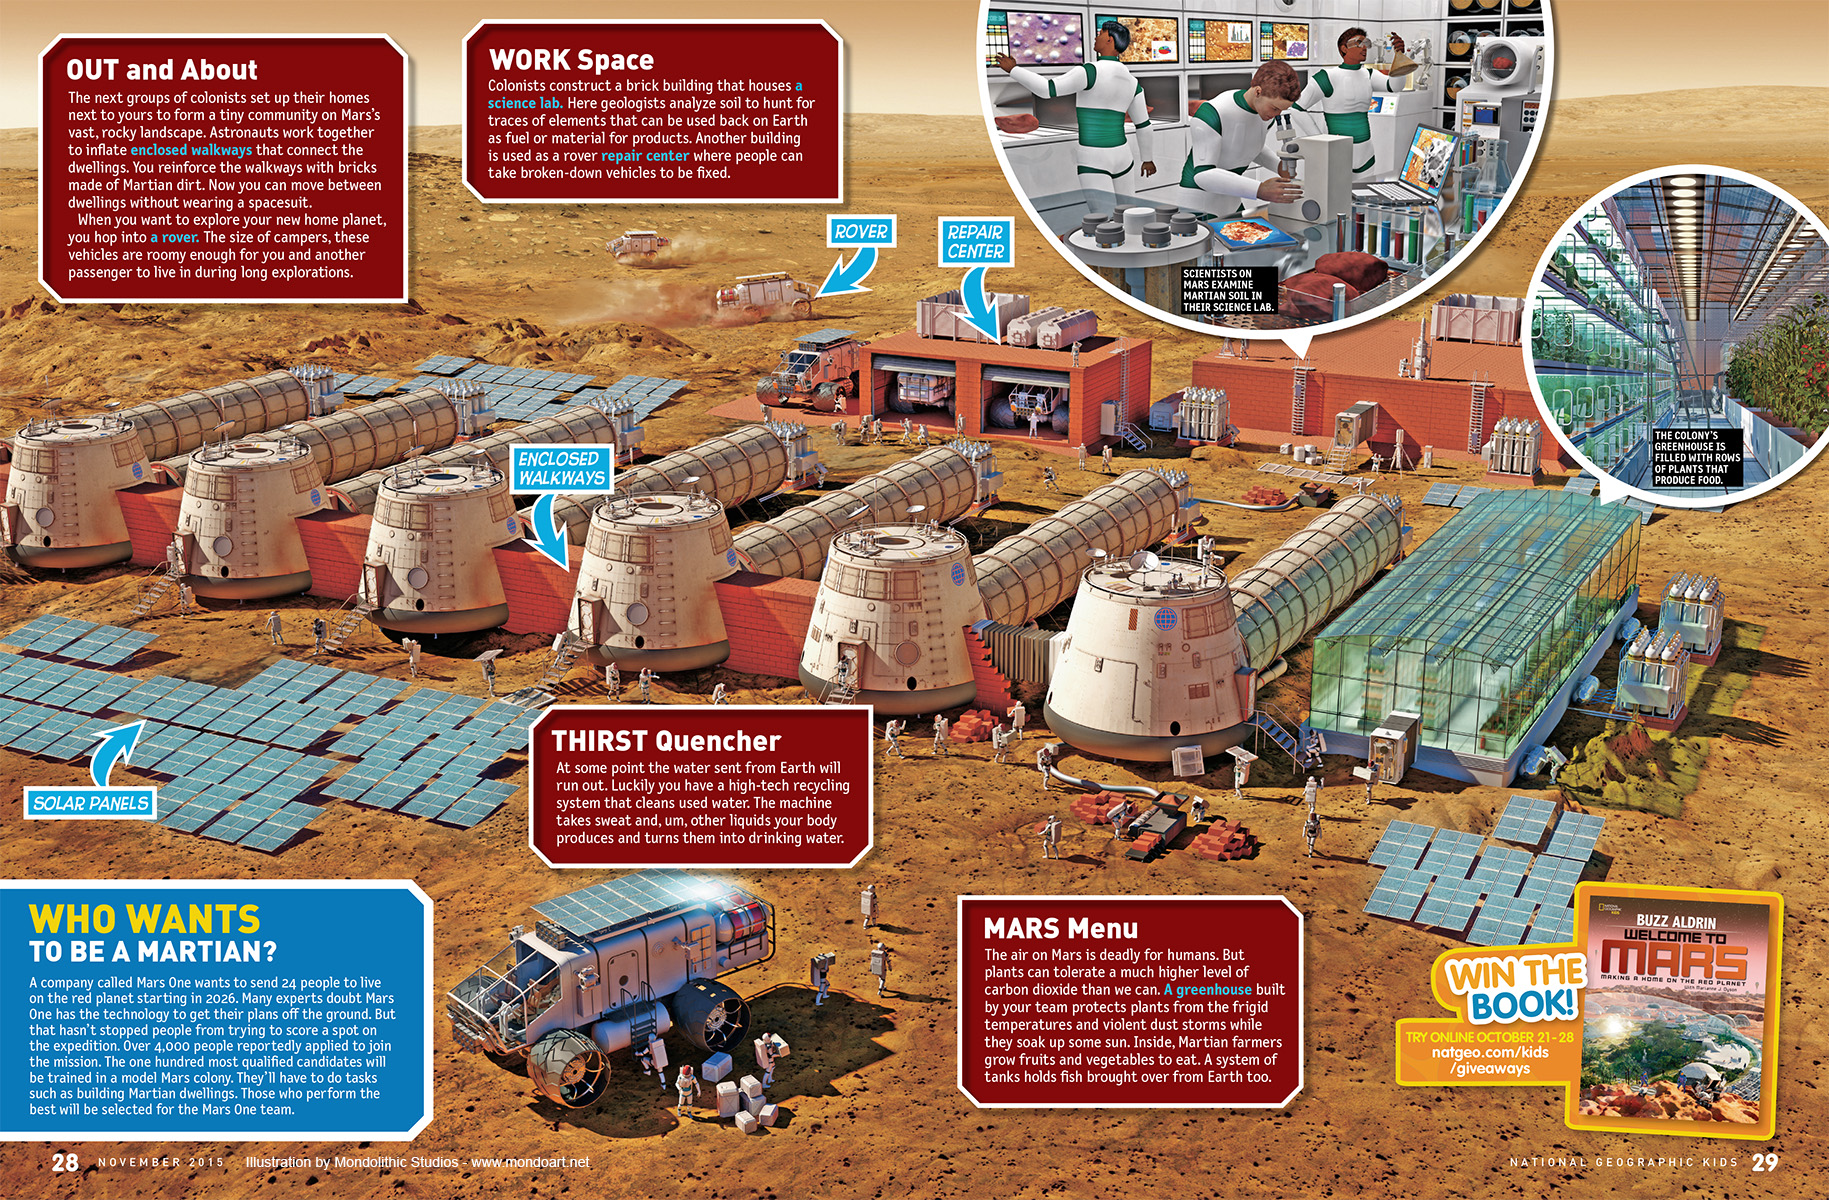 Illustrations of Life on Mars